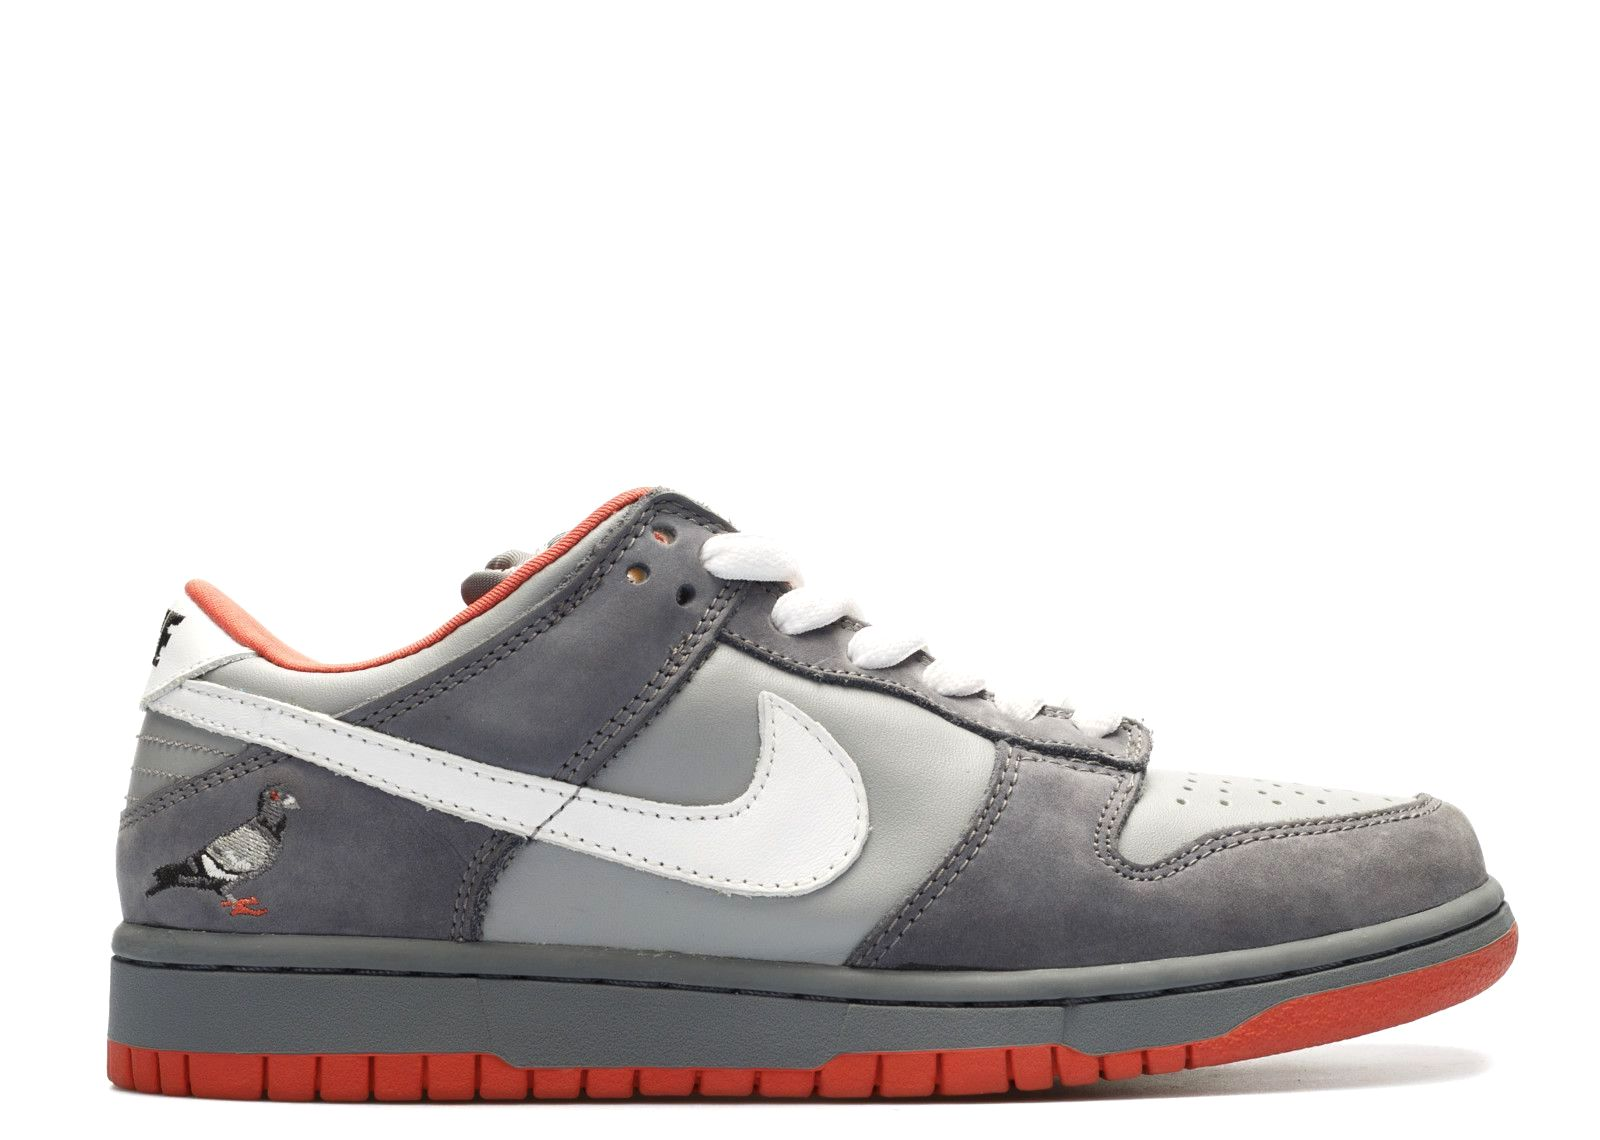 Nike Dunk SB Low Staple «NYC Pigeon»